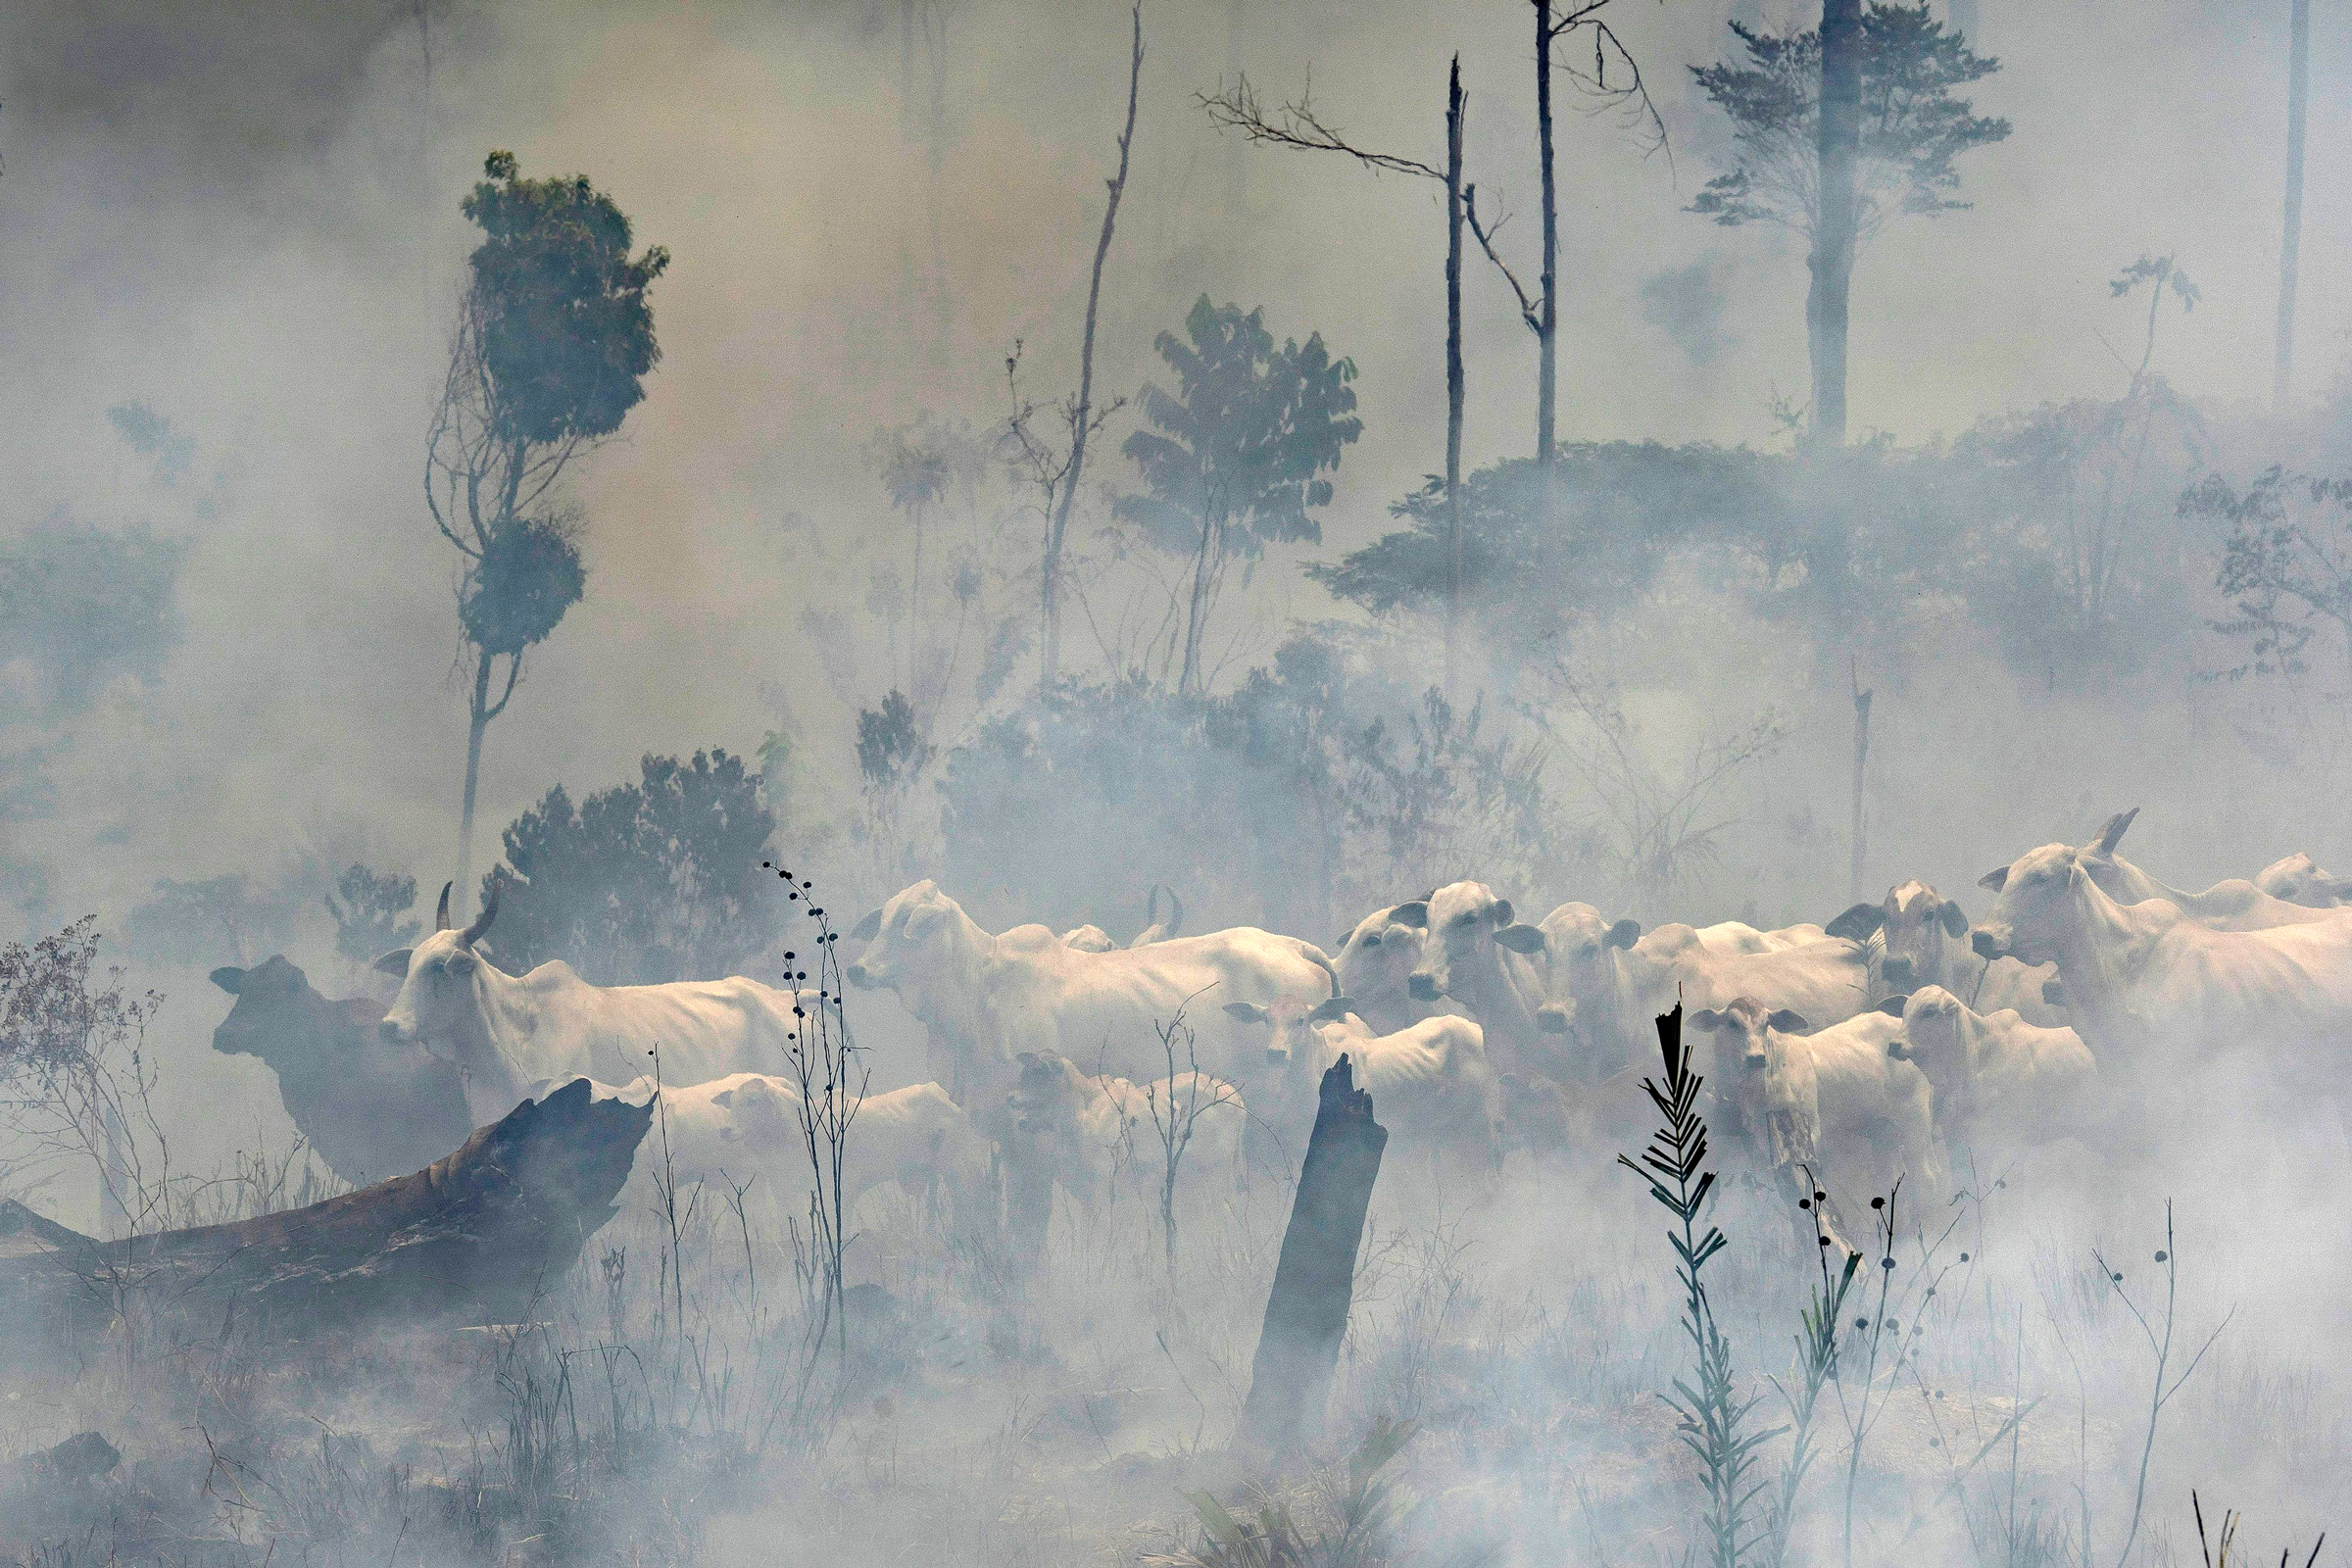 A herd of cattle stand in the midst of smoke from the fires at the Nova Fronteira region in Novo Progresso, Brazil, . Brazilian President Jair Bolsonaro sent the military to help extinguish some fires. Last week, he passed a decree banning most fires for land-clearing for a period of 60 days, although he later limited the ban to the AmazonAmazon Fires, Novo Progresso, Brazil - 03 Sep 2019